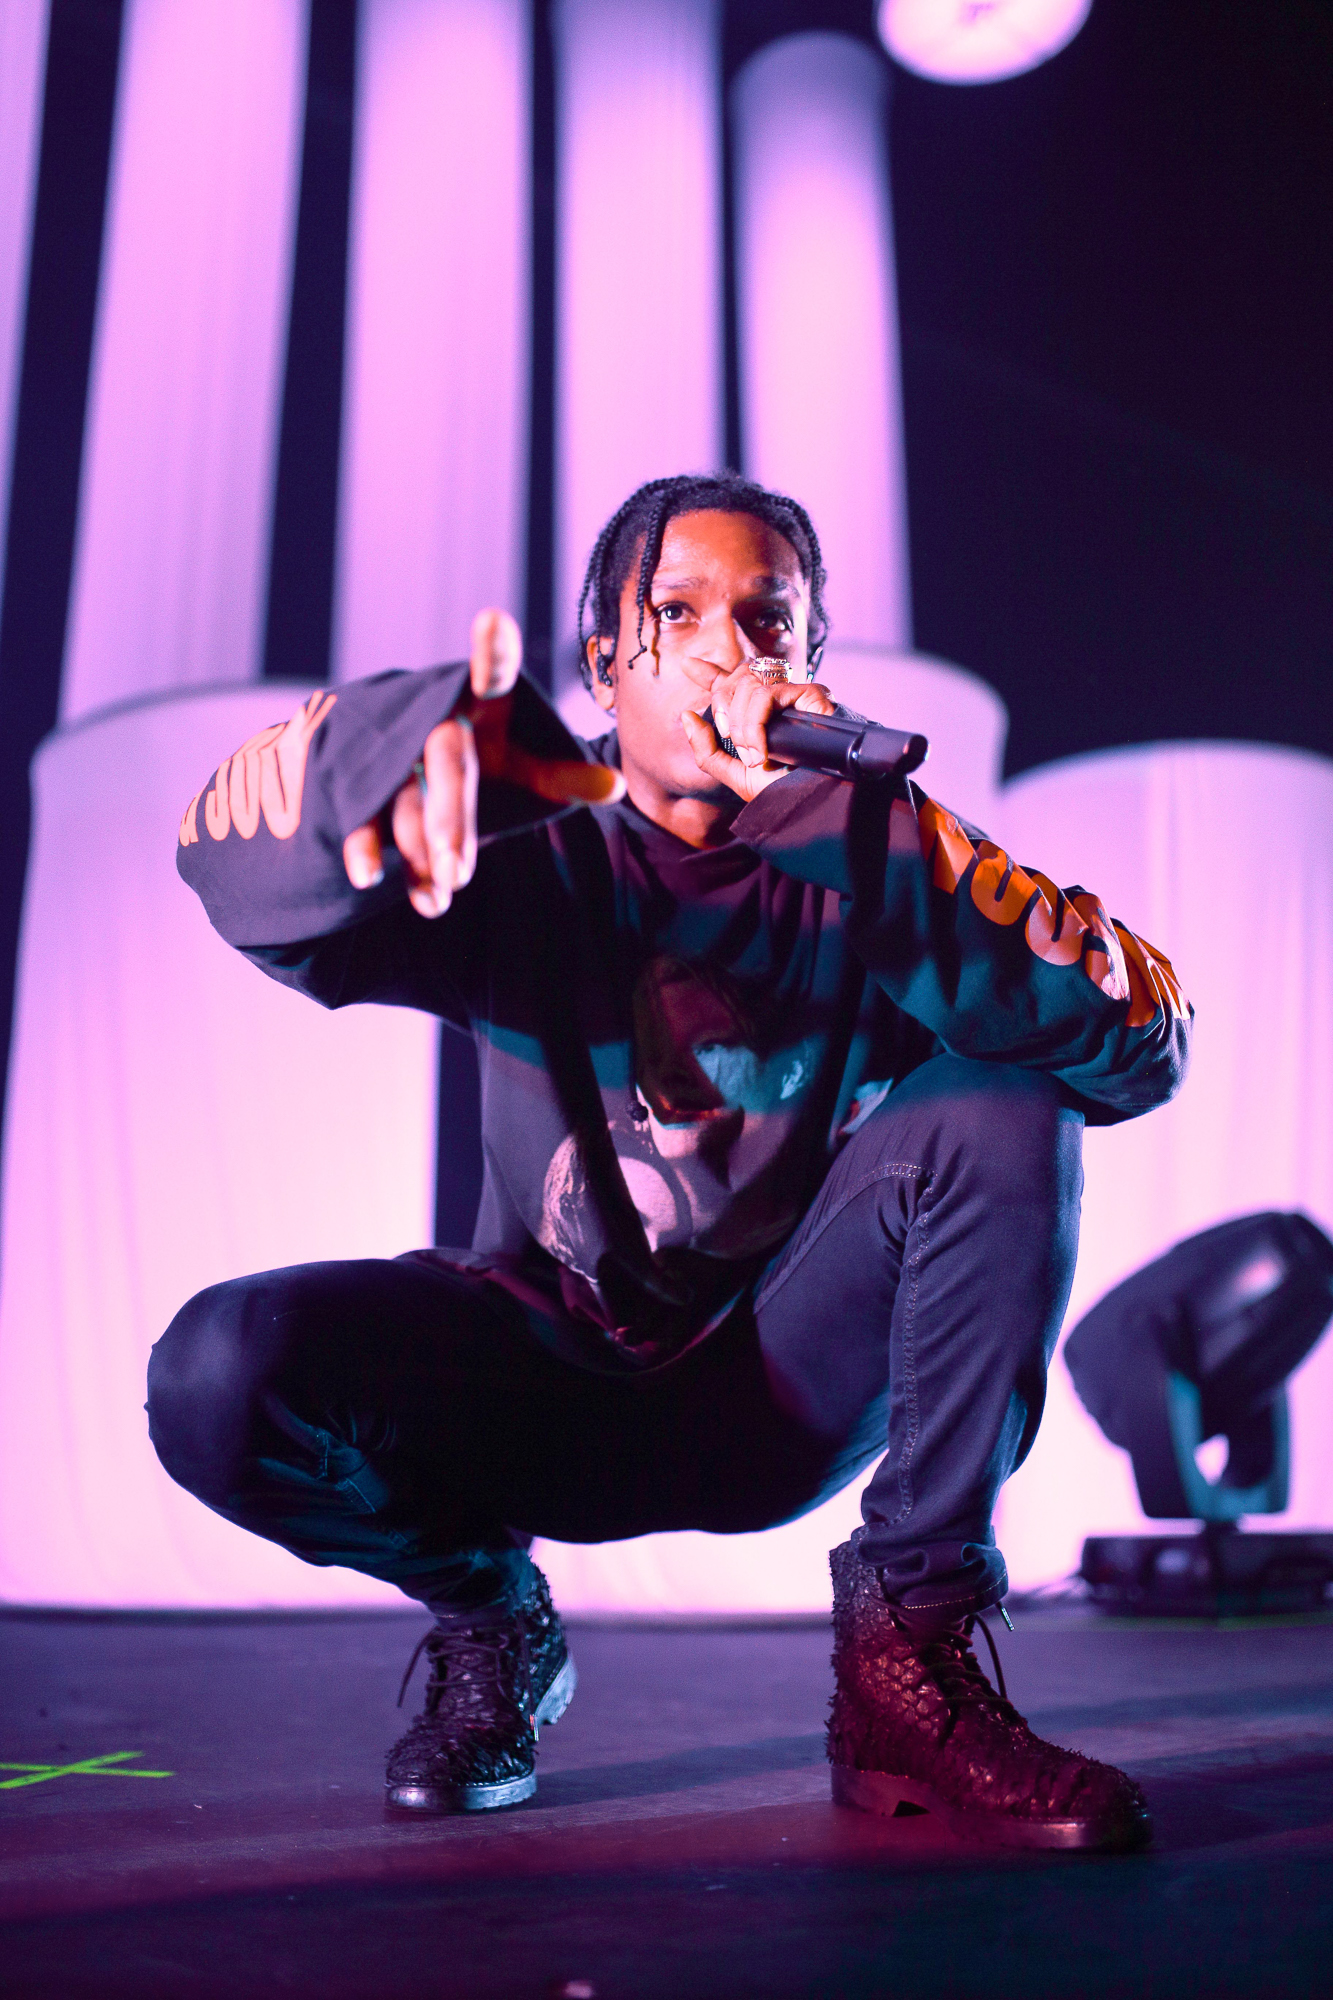 asap_rocky_adelaideentertainmentcentre_21.02.16 (12 of 29).jpg